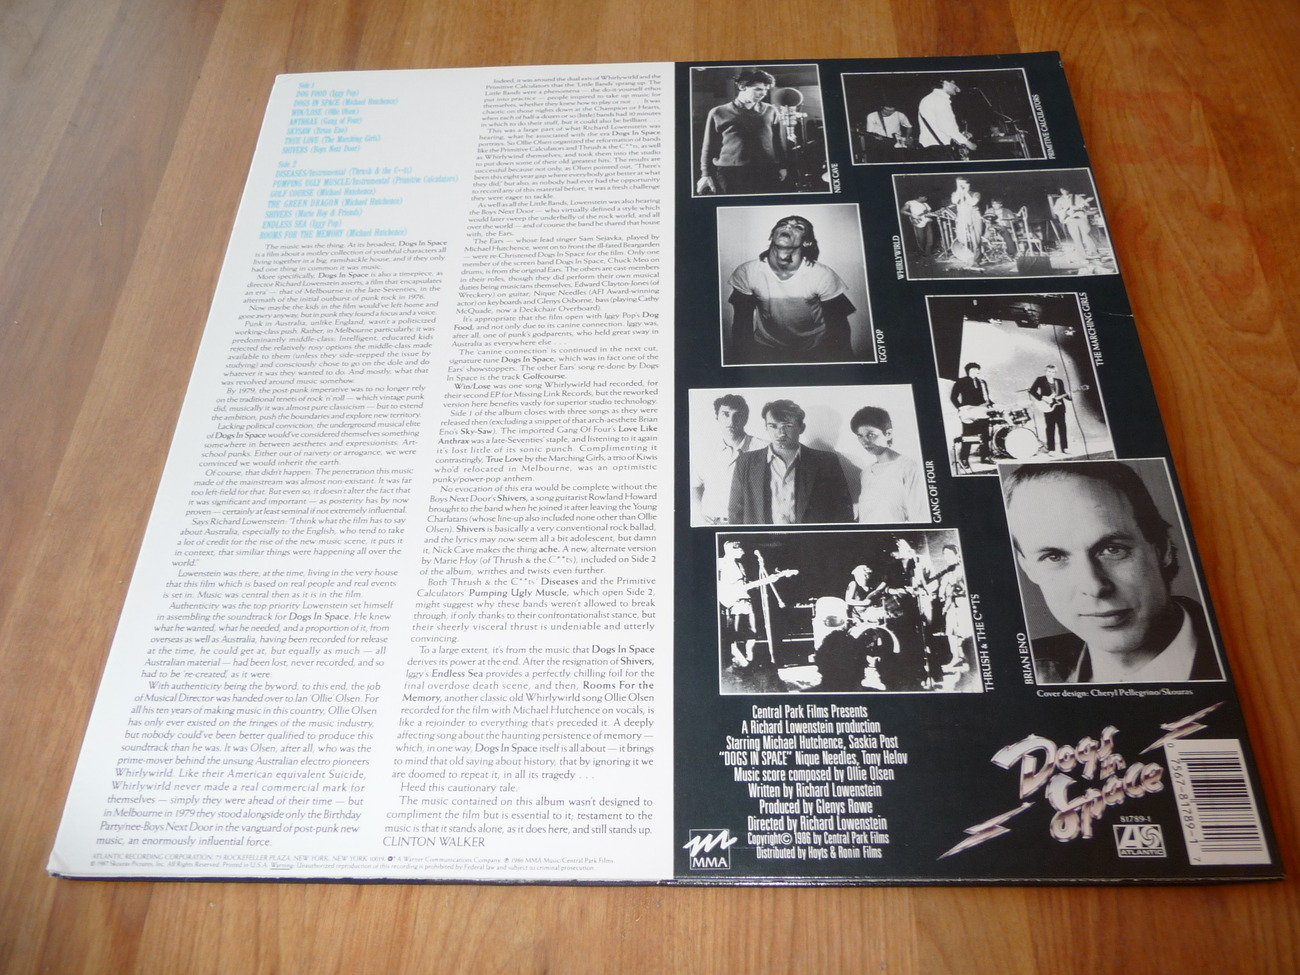 Dogs In Space Soundtrack Lp Iggy Pop Eno Inxs Gang Of Four Nick Cave